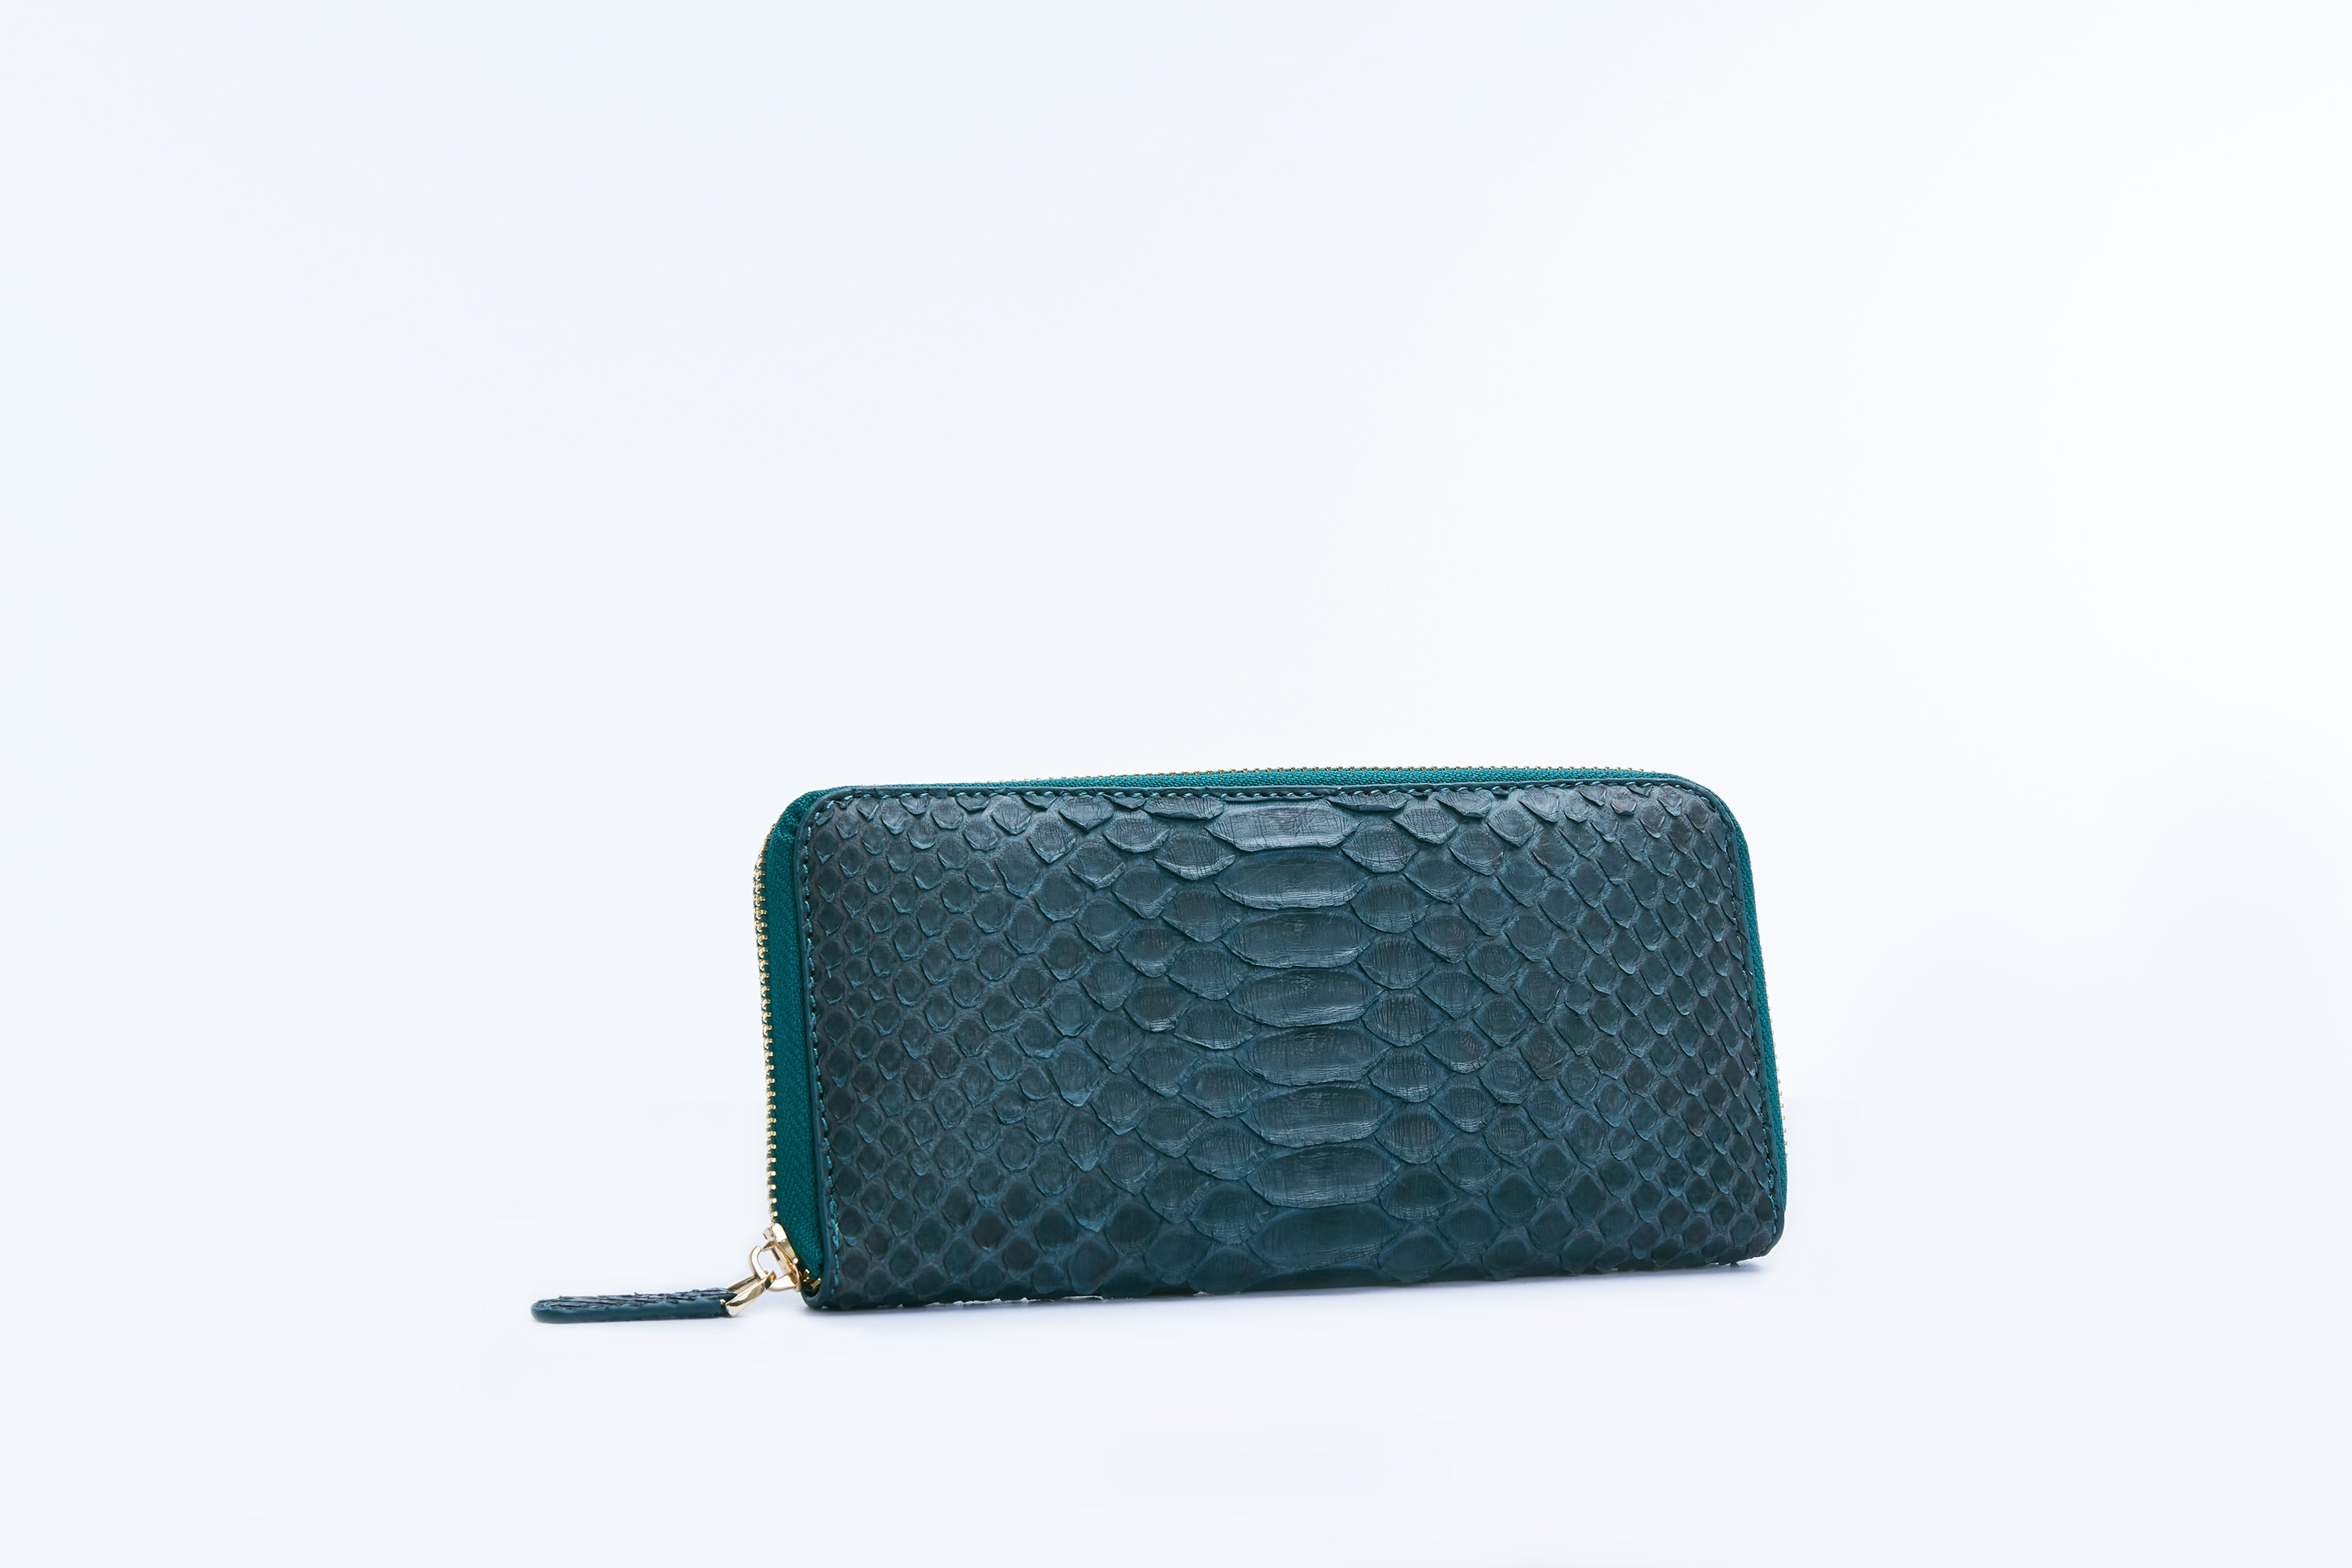 ZIPPED WALLET - GREEN